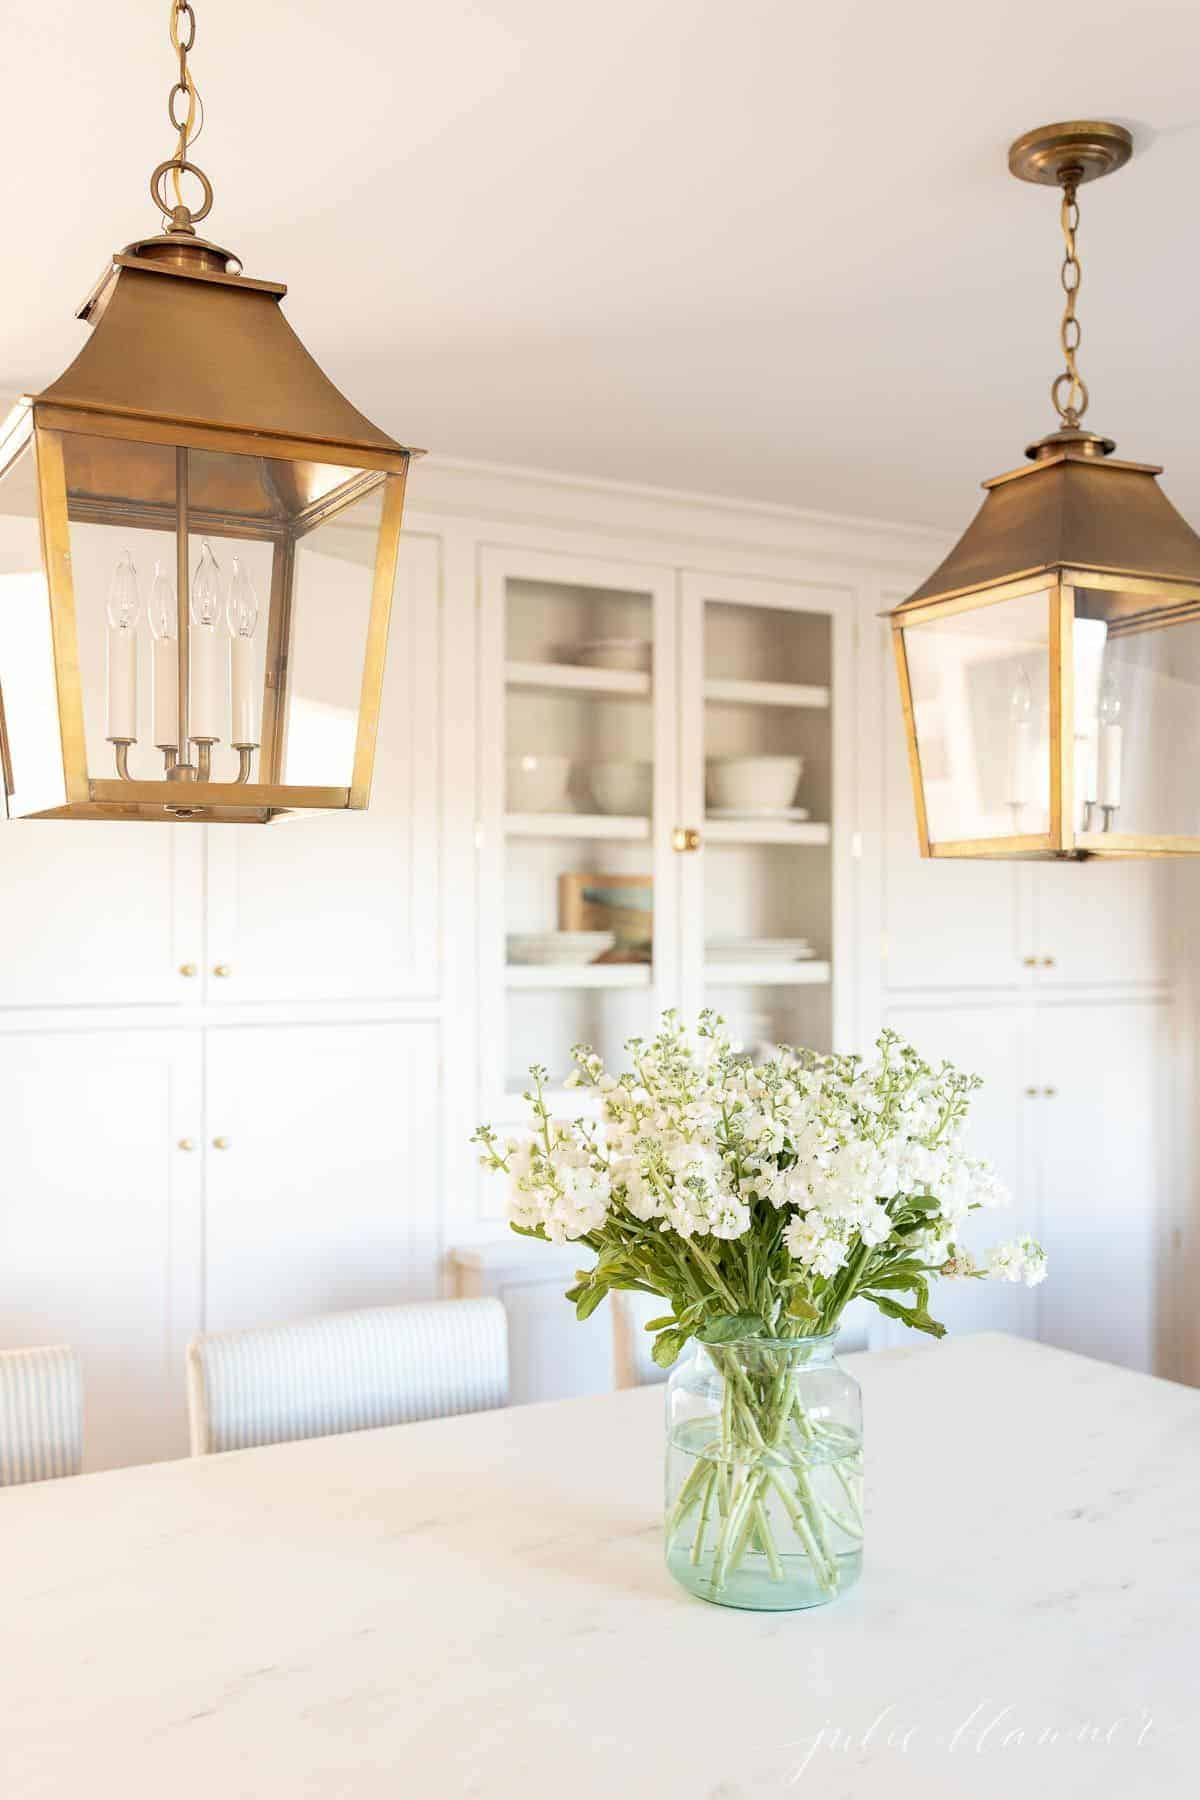 A white kitchen with brass lanterns and marble countertops, with a stock flower arrangement on the island.